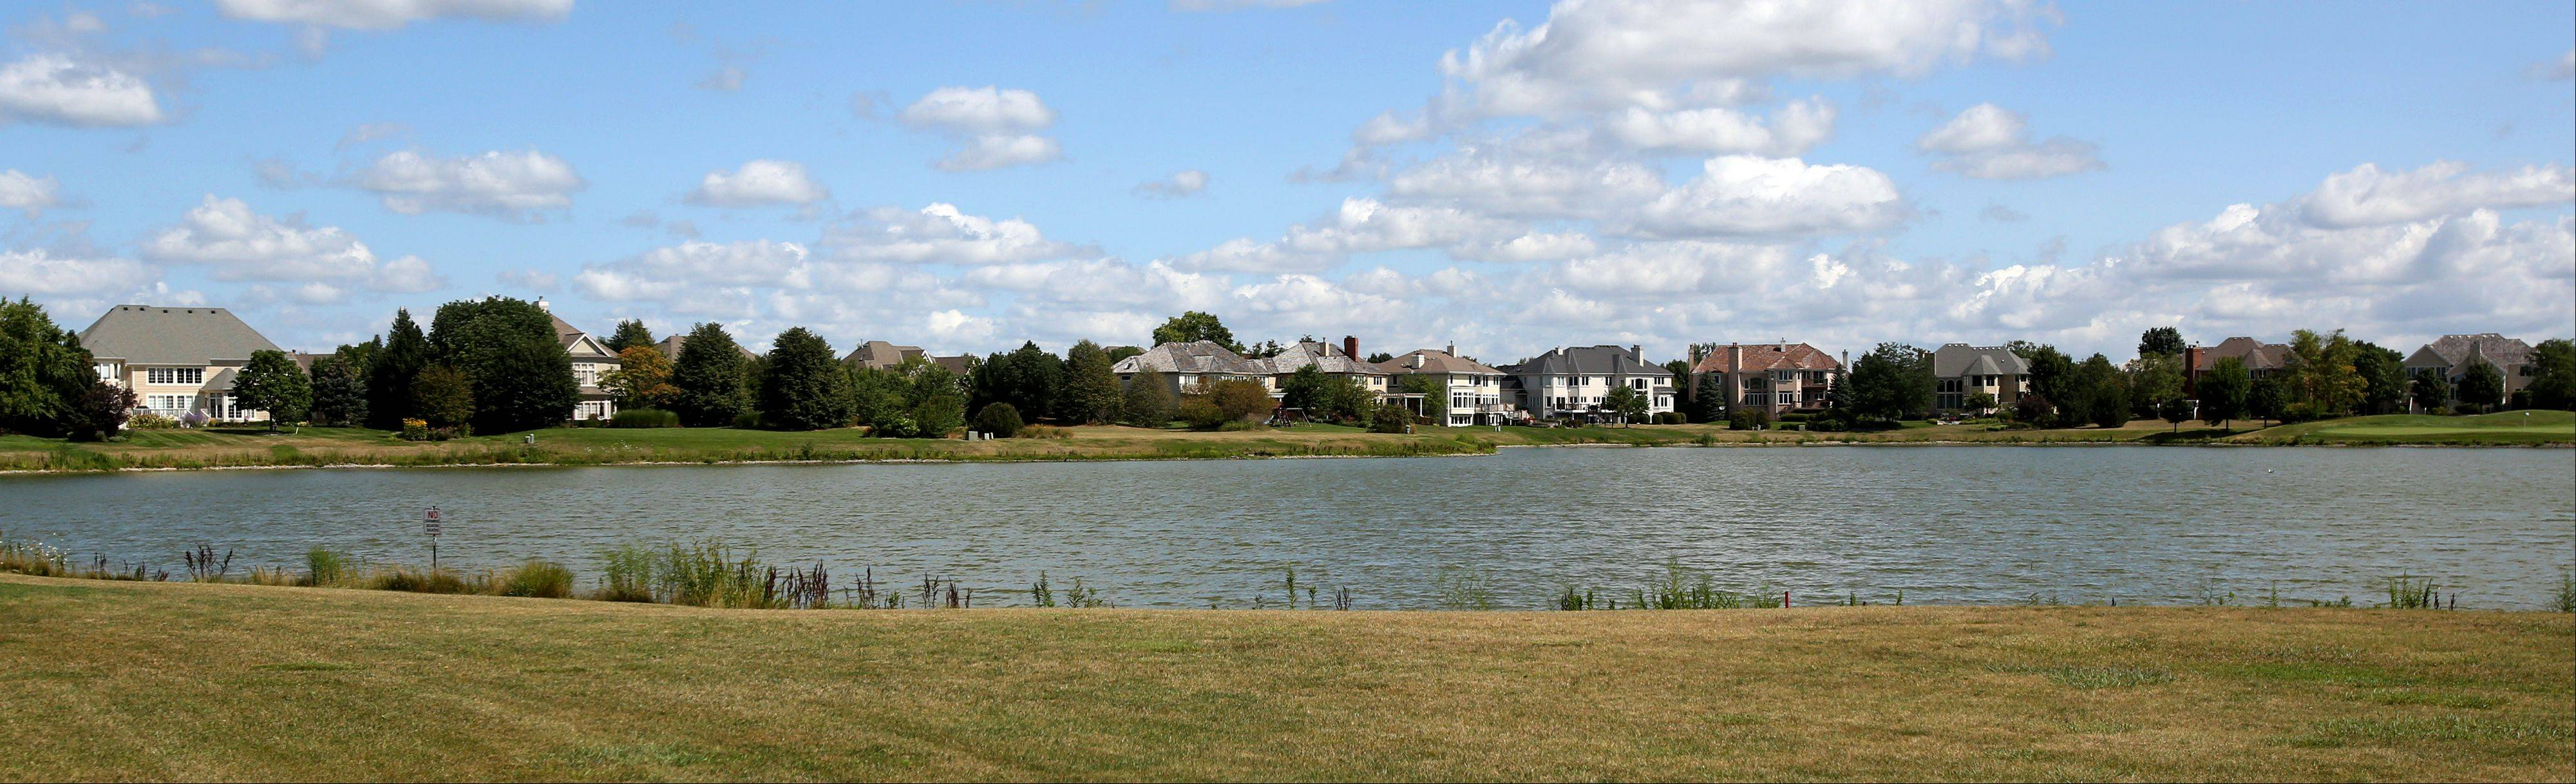 Many houses in White Eagle Club back up to a pond or the White Eagle Golf Club course.